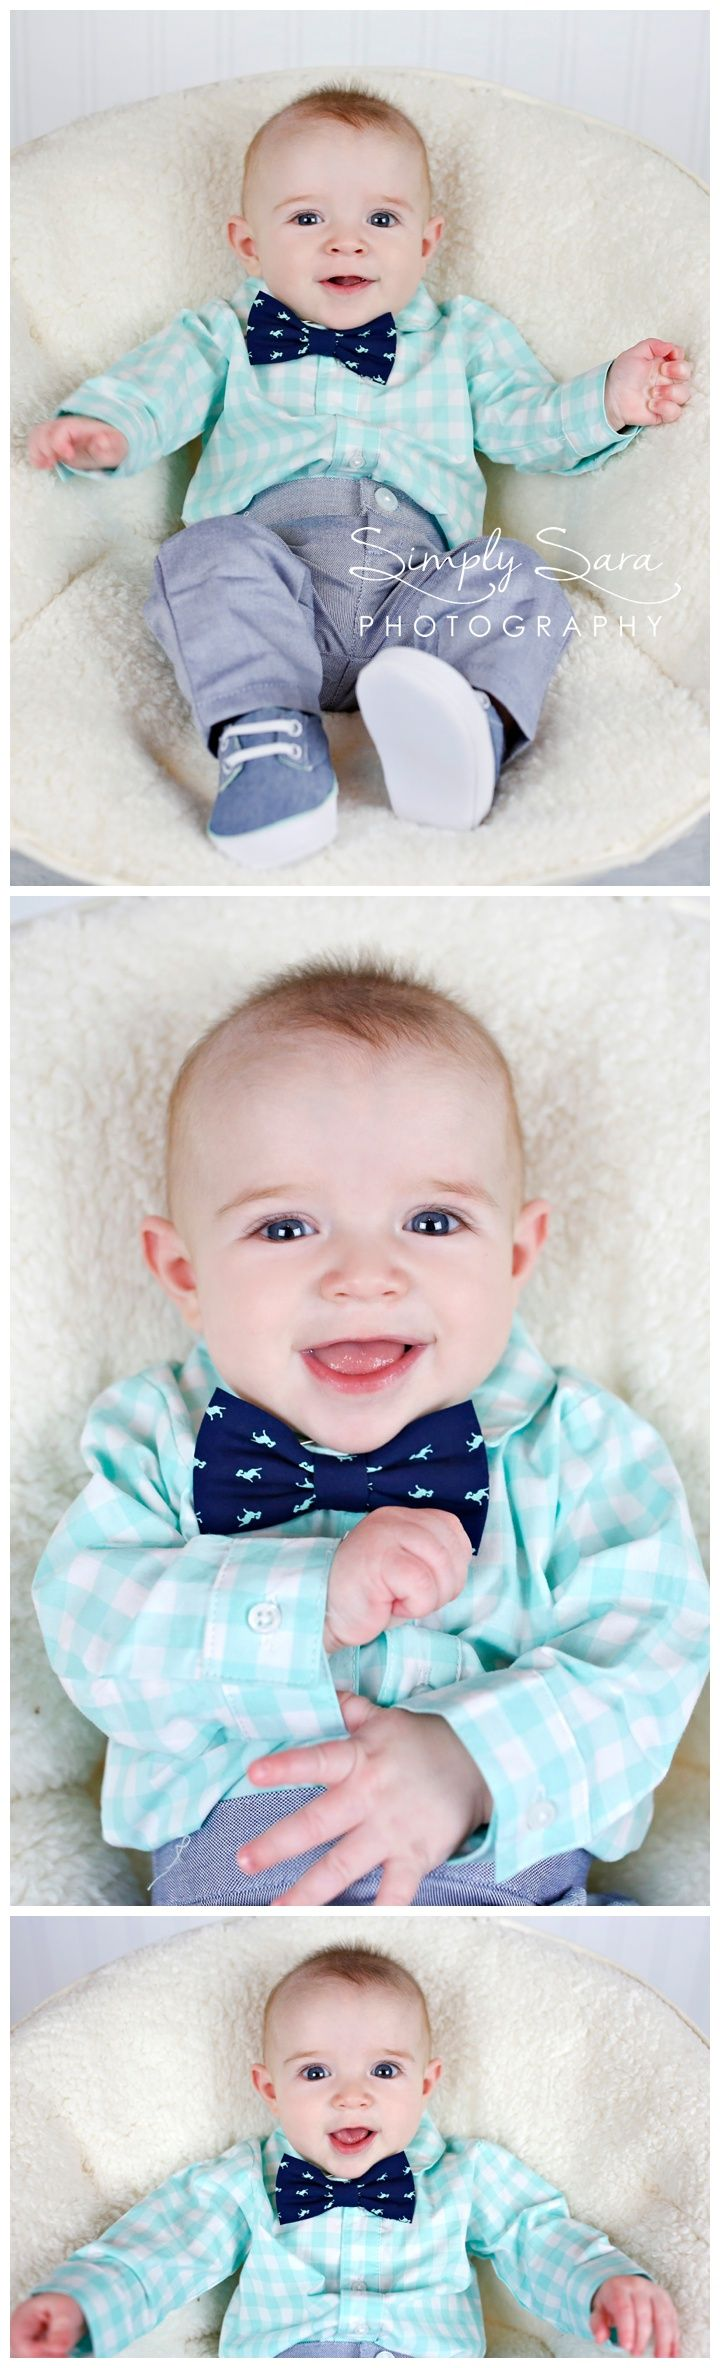 Indoor photo ideas poses 4 month old baby boy bow for 4 month baby photo ideas